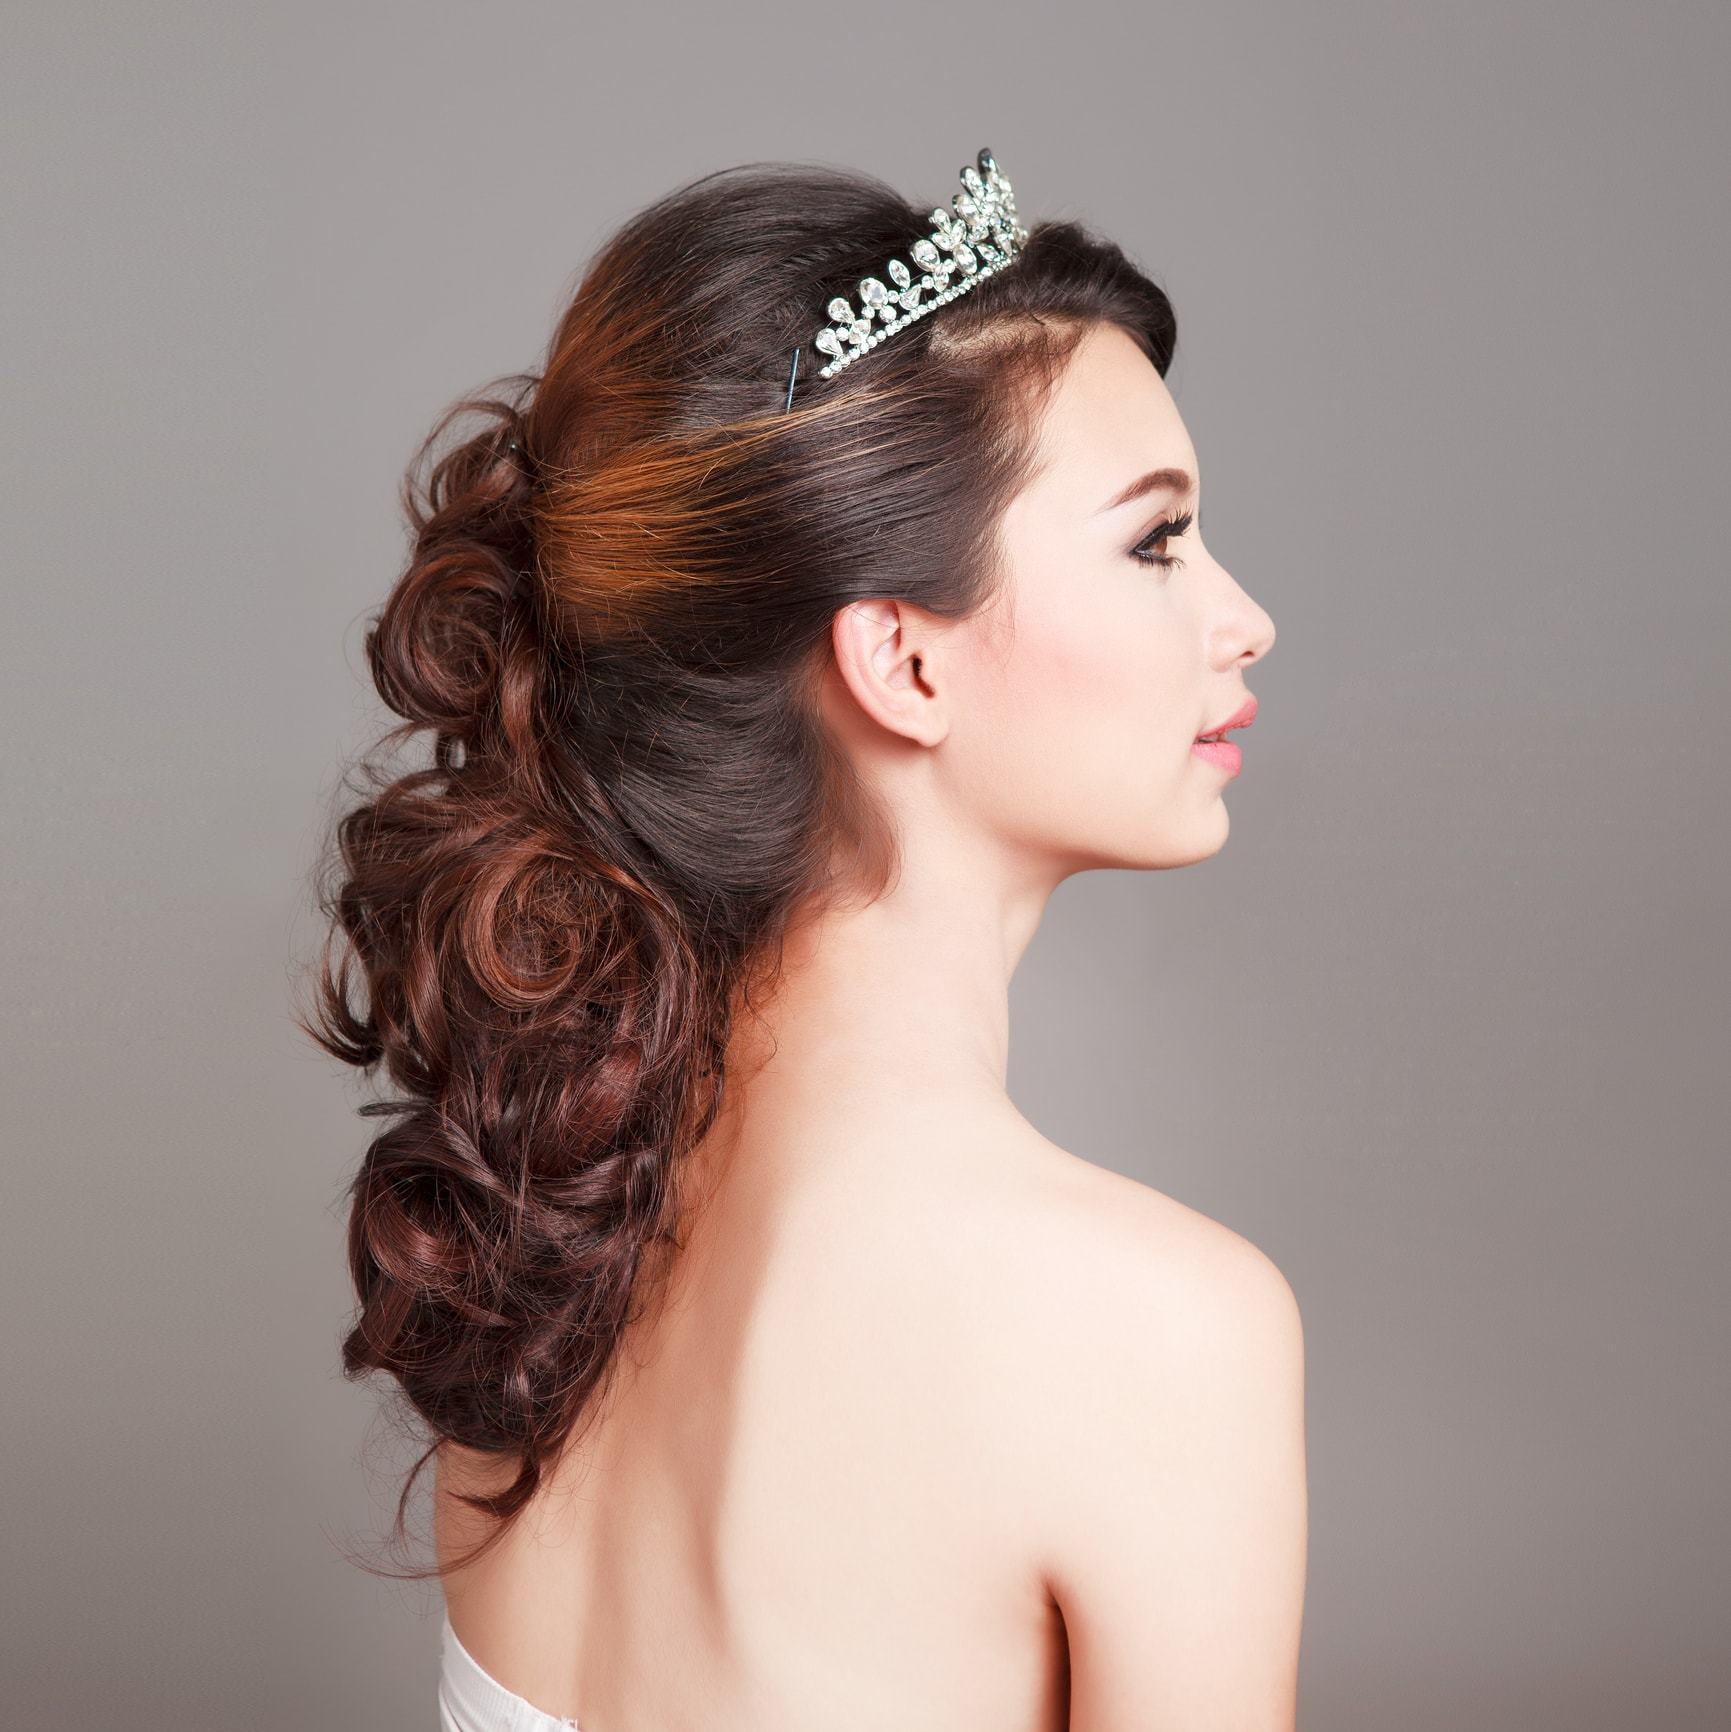 Flower Hairstyles Tiara Curled Updo